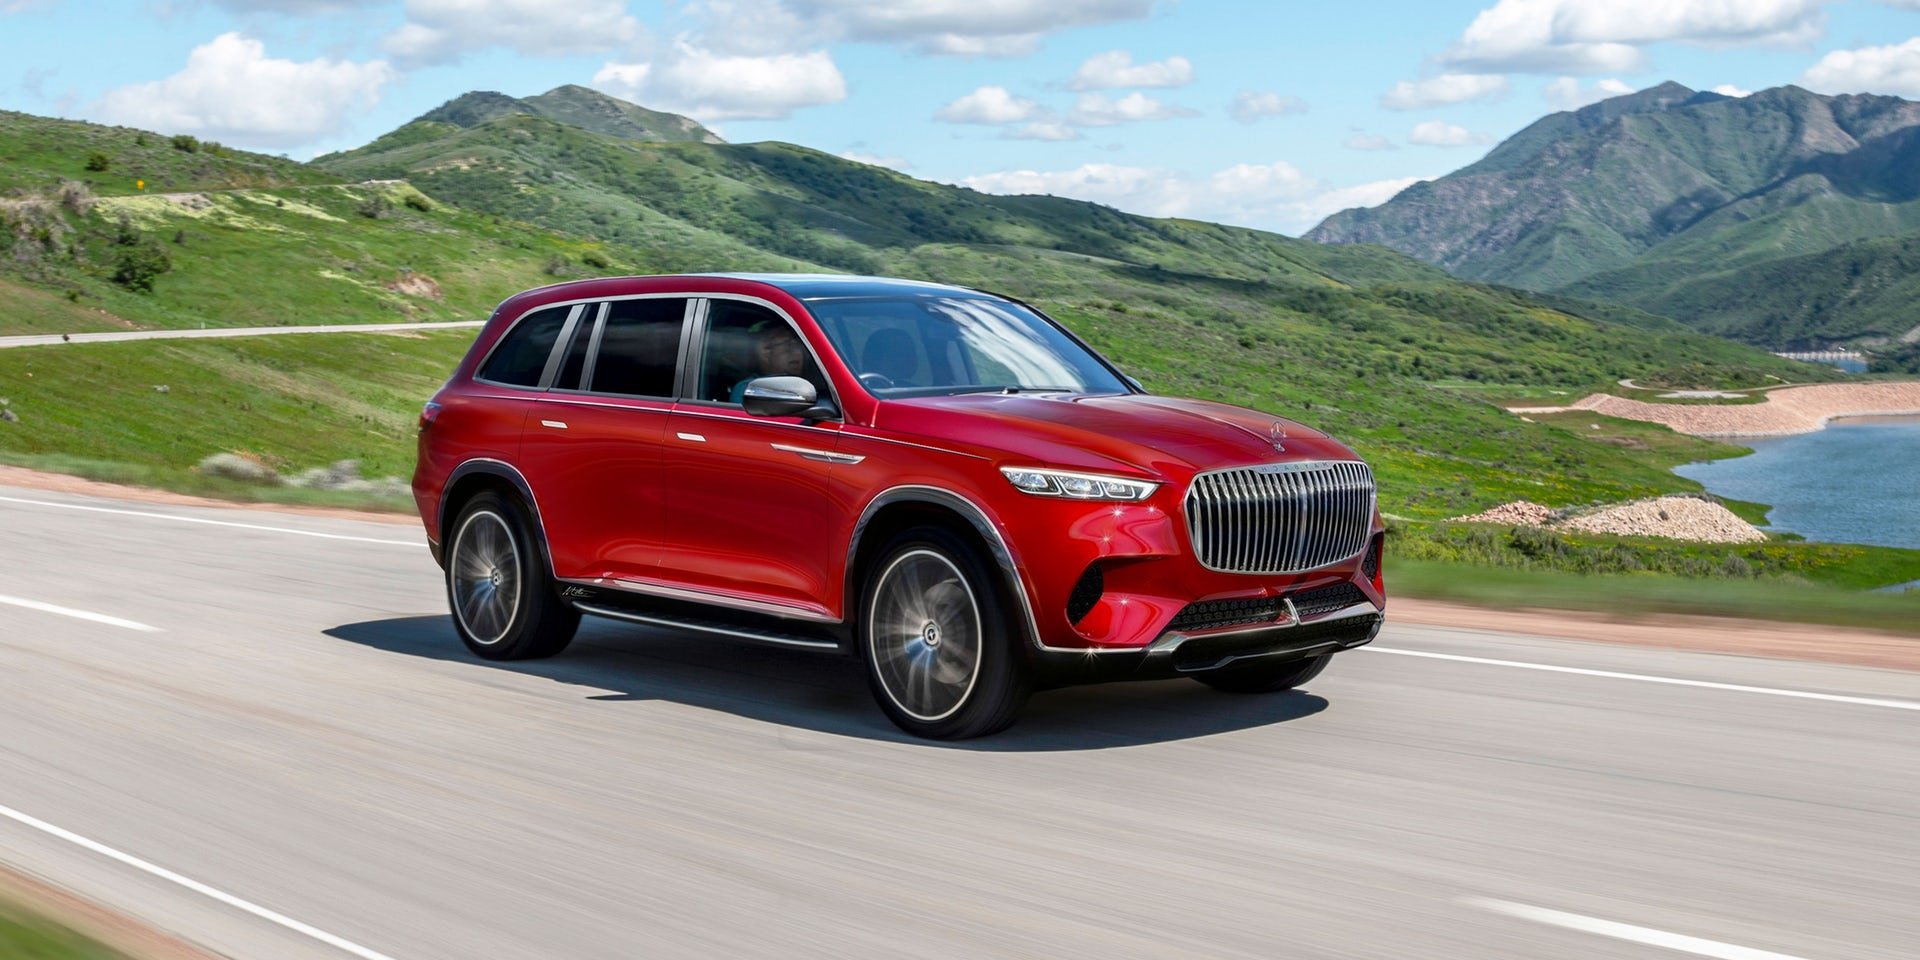 2021 Maybach Gls Class Could Look This Good Autoevolution